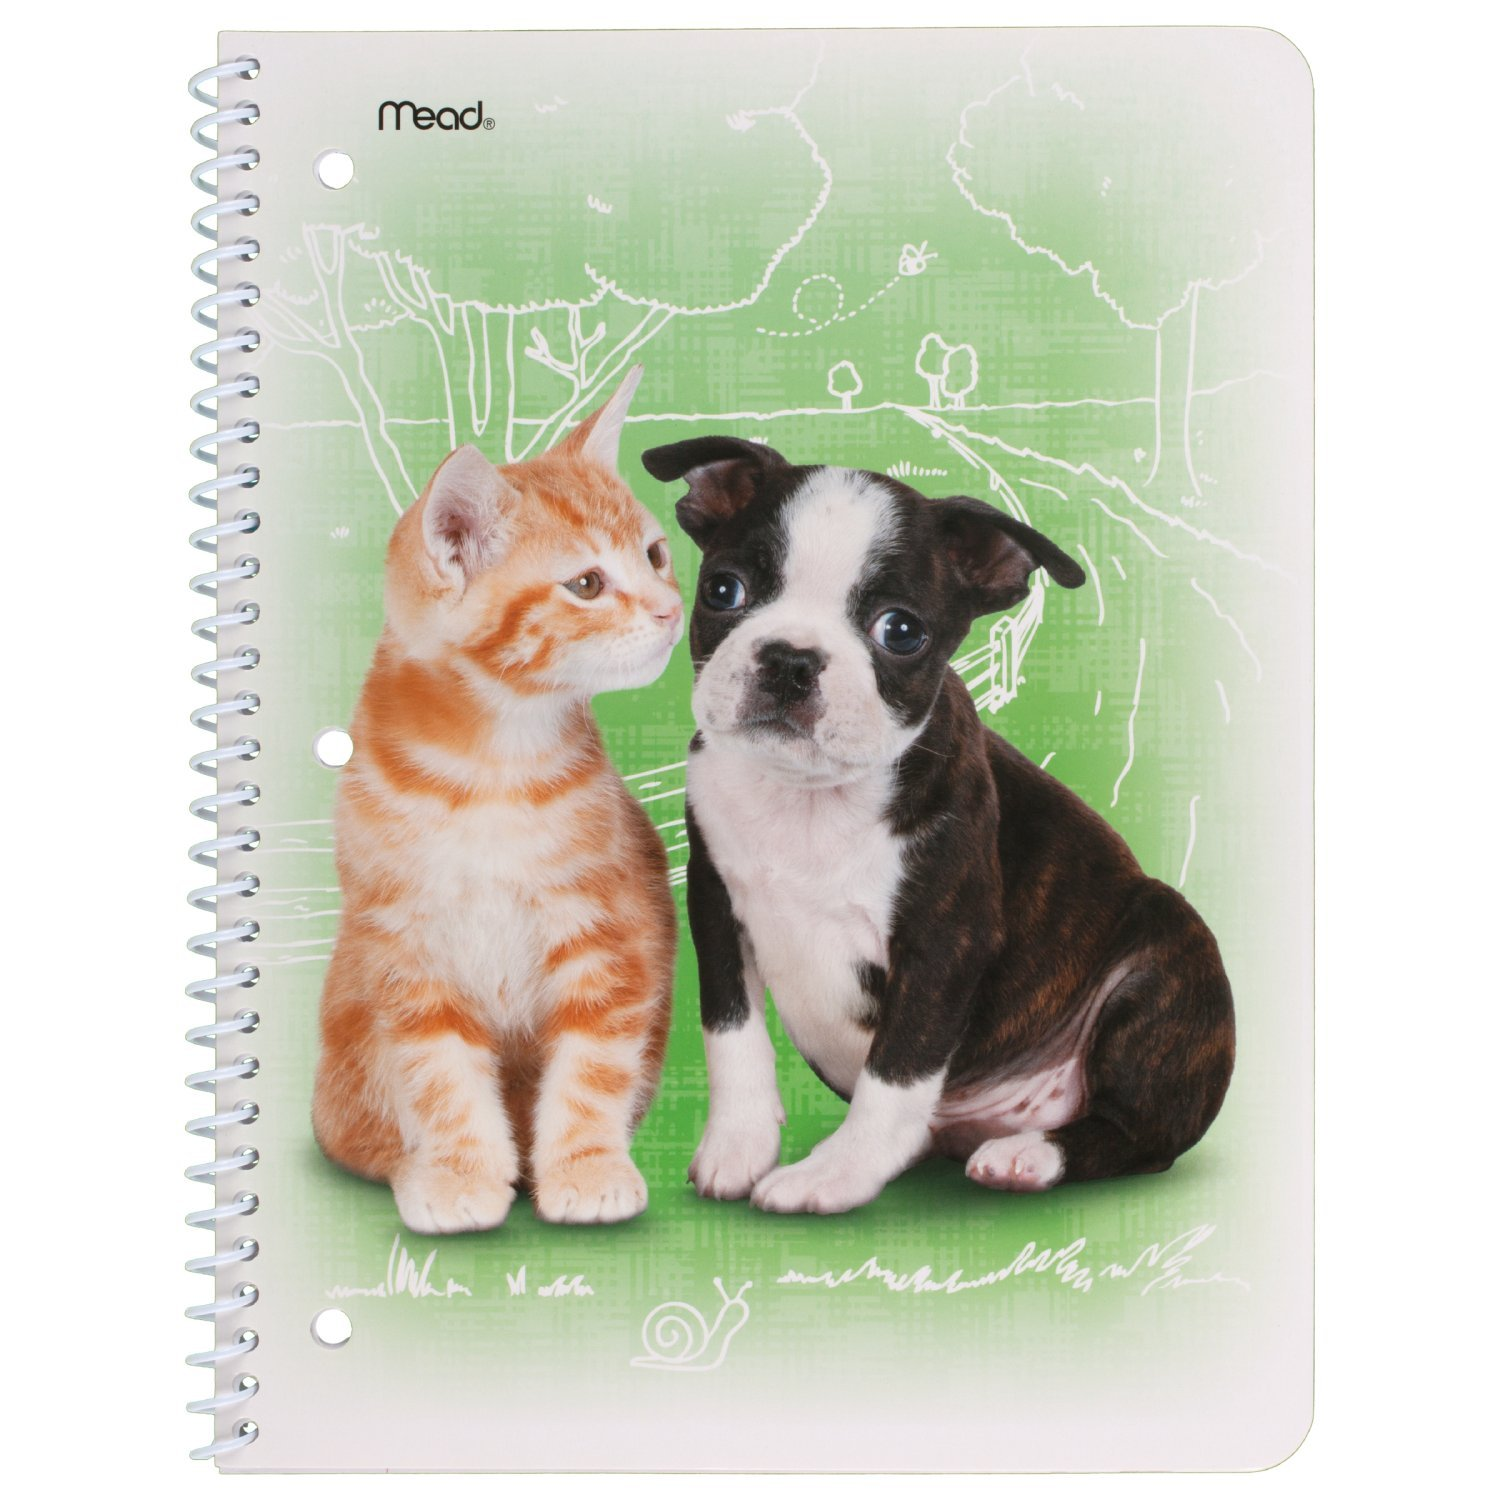 Mead Notebook, 1 Subject, Wide Ruled Paper, Stickers, Purrs & Grrrs, Design Will Vary (07036)